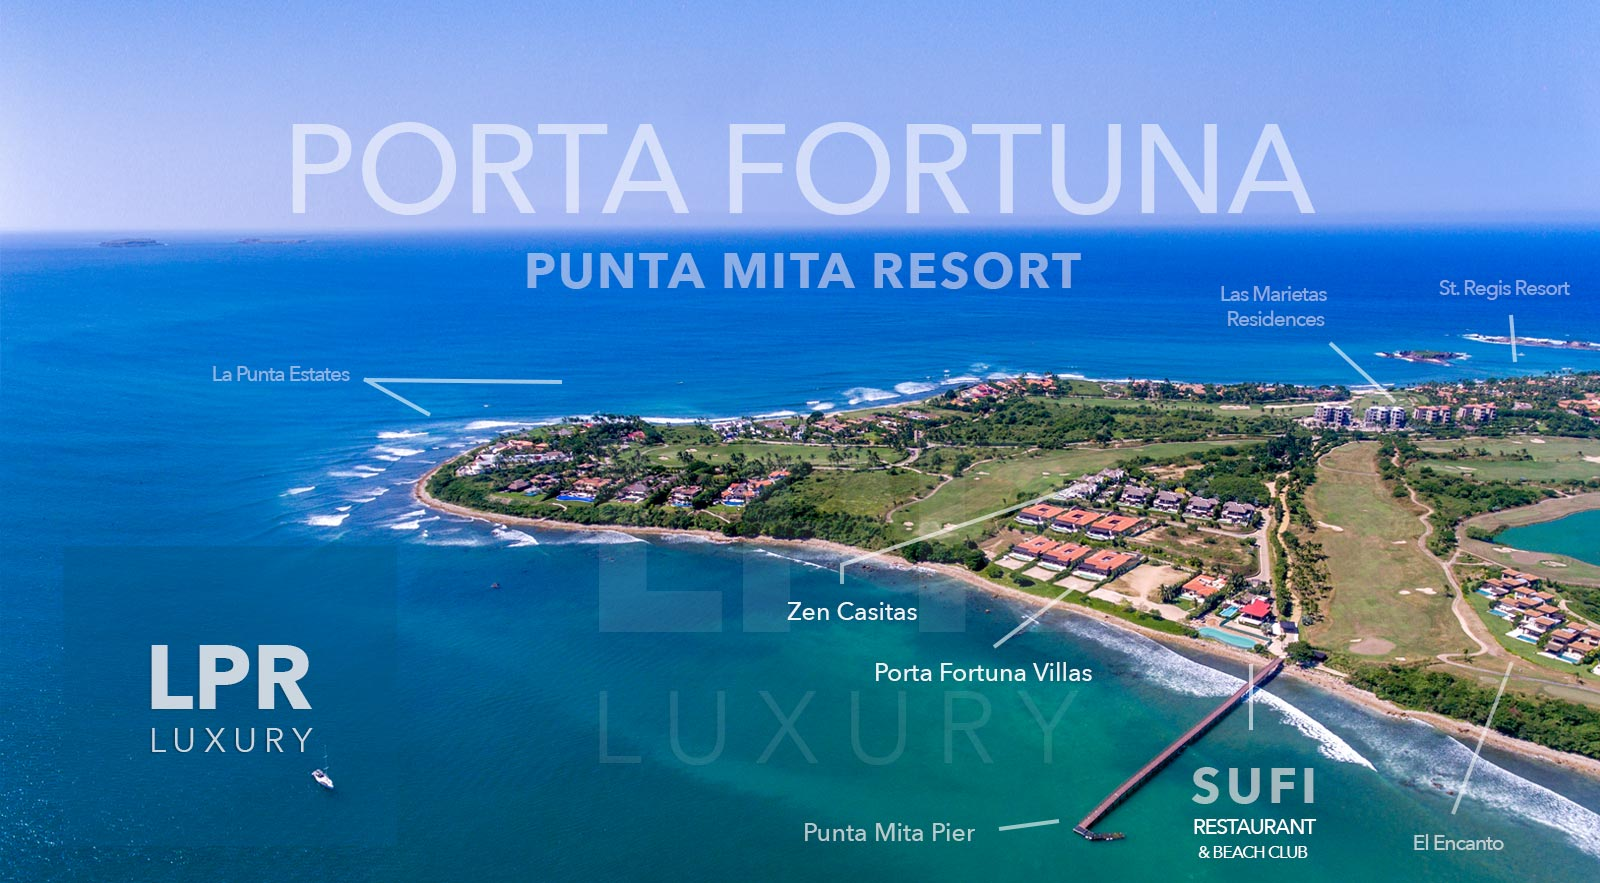 Porta Fortuna - Oceanfront and ocean view Villas - Luxury Real Estate and Vacation Rentals at the Punta Mita Resort, Riviera Nayarit, Mexico